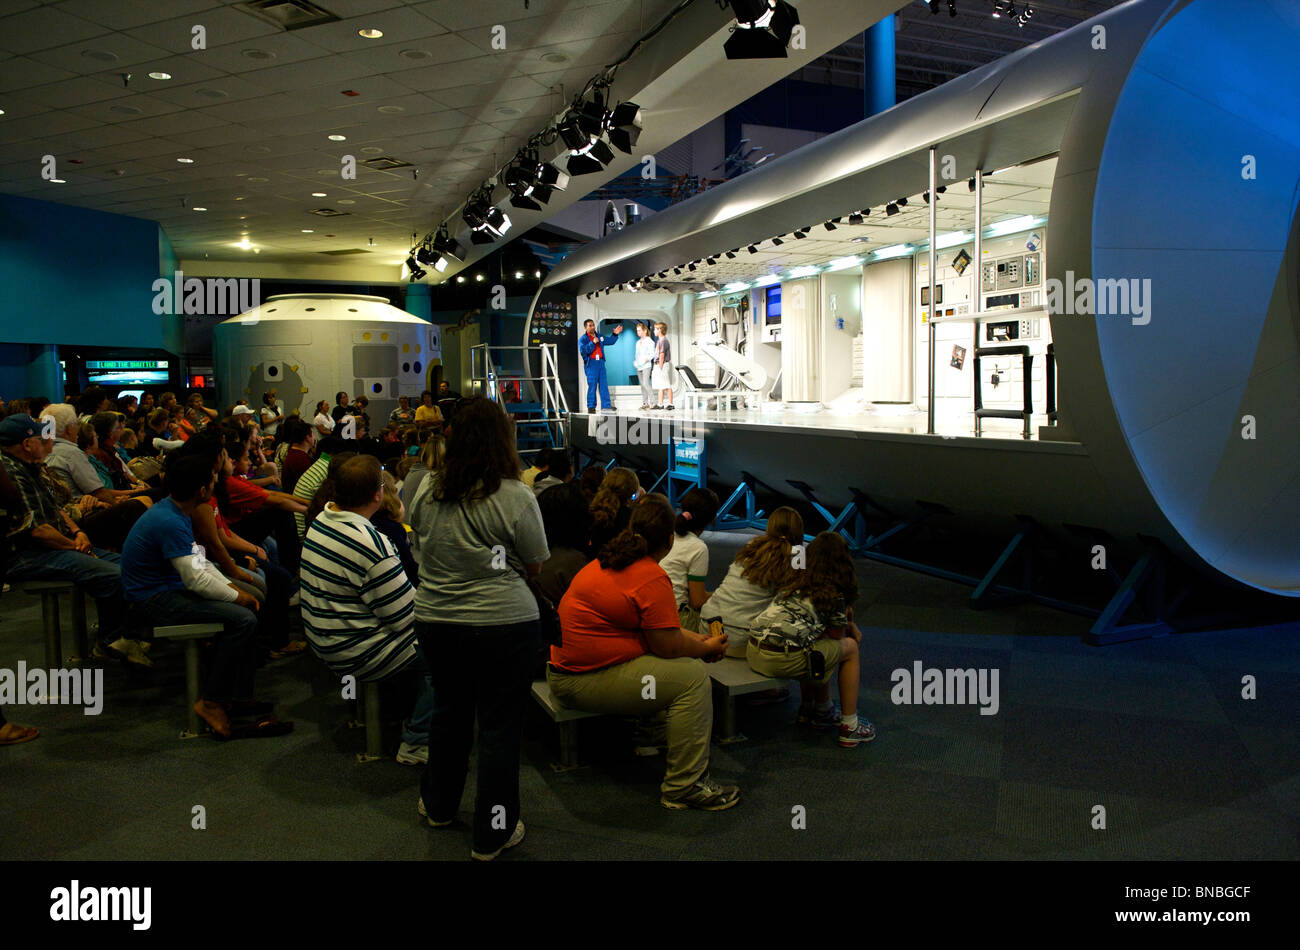 Demonstration on living inside the space station, Space centre, Houston Texas, U.S.A Stock Photo